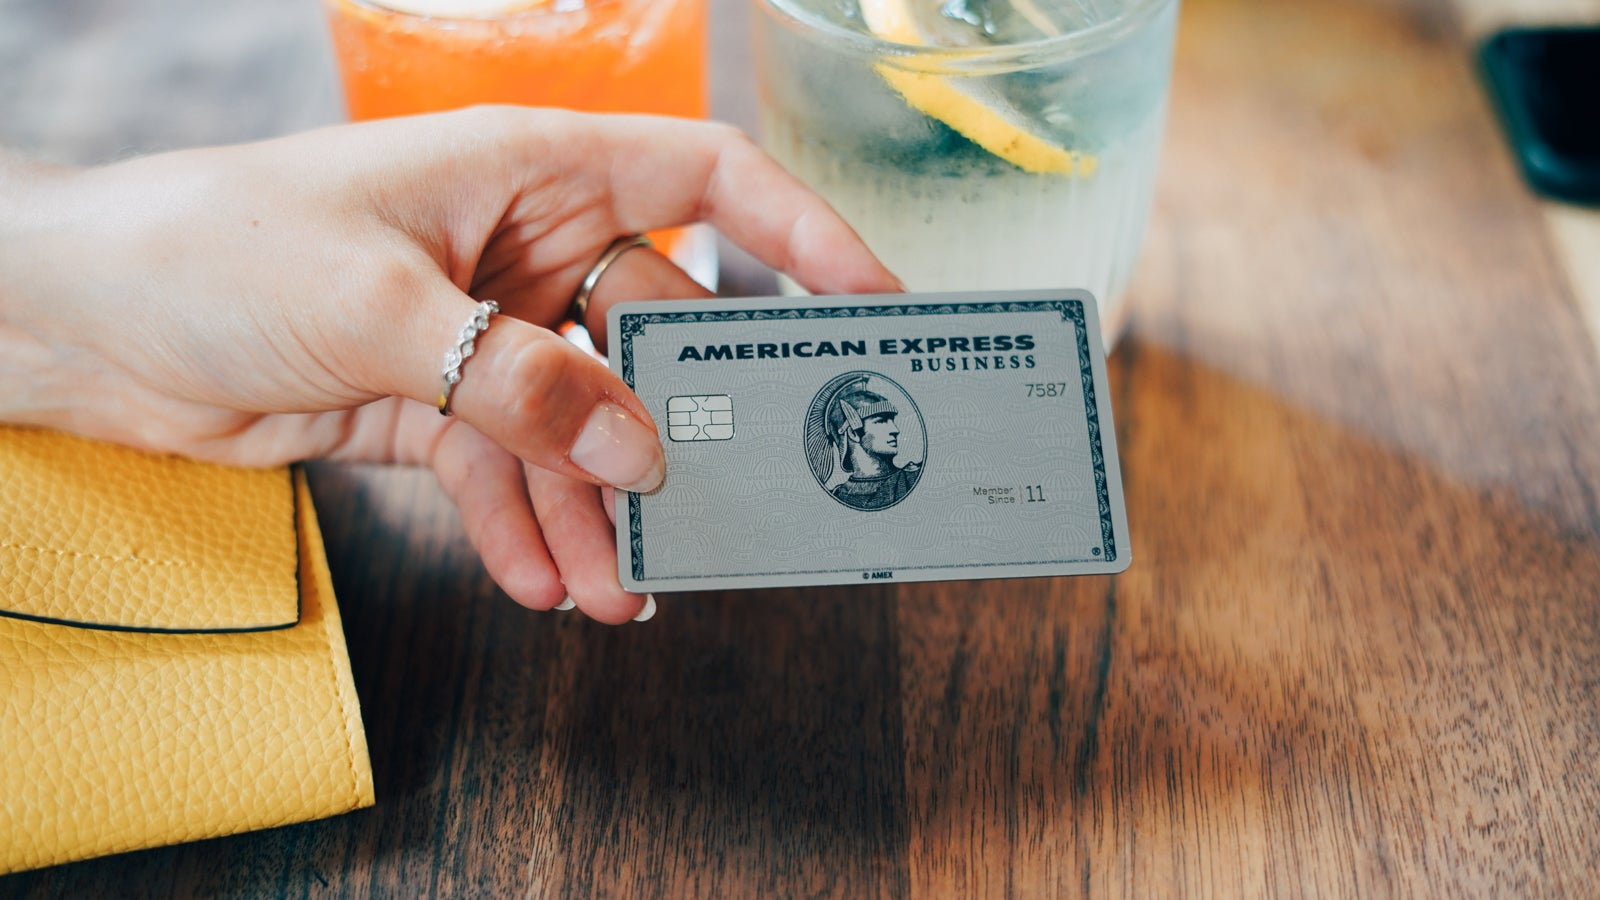 Everything you need to know about Amex purchase protection